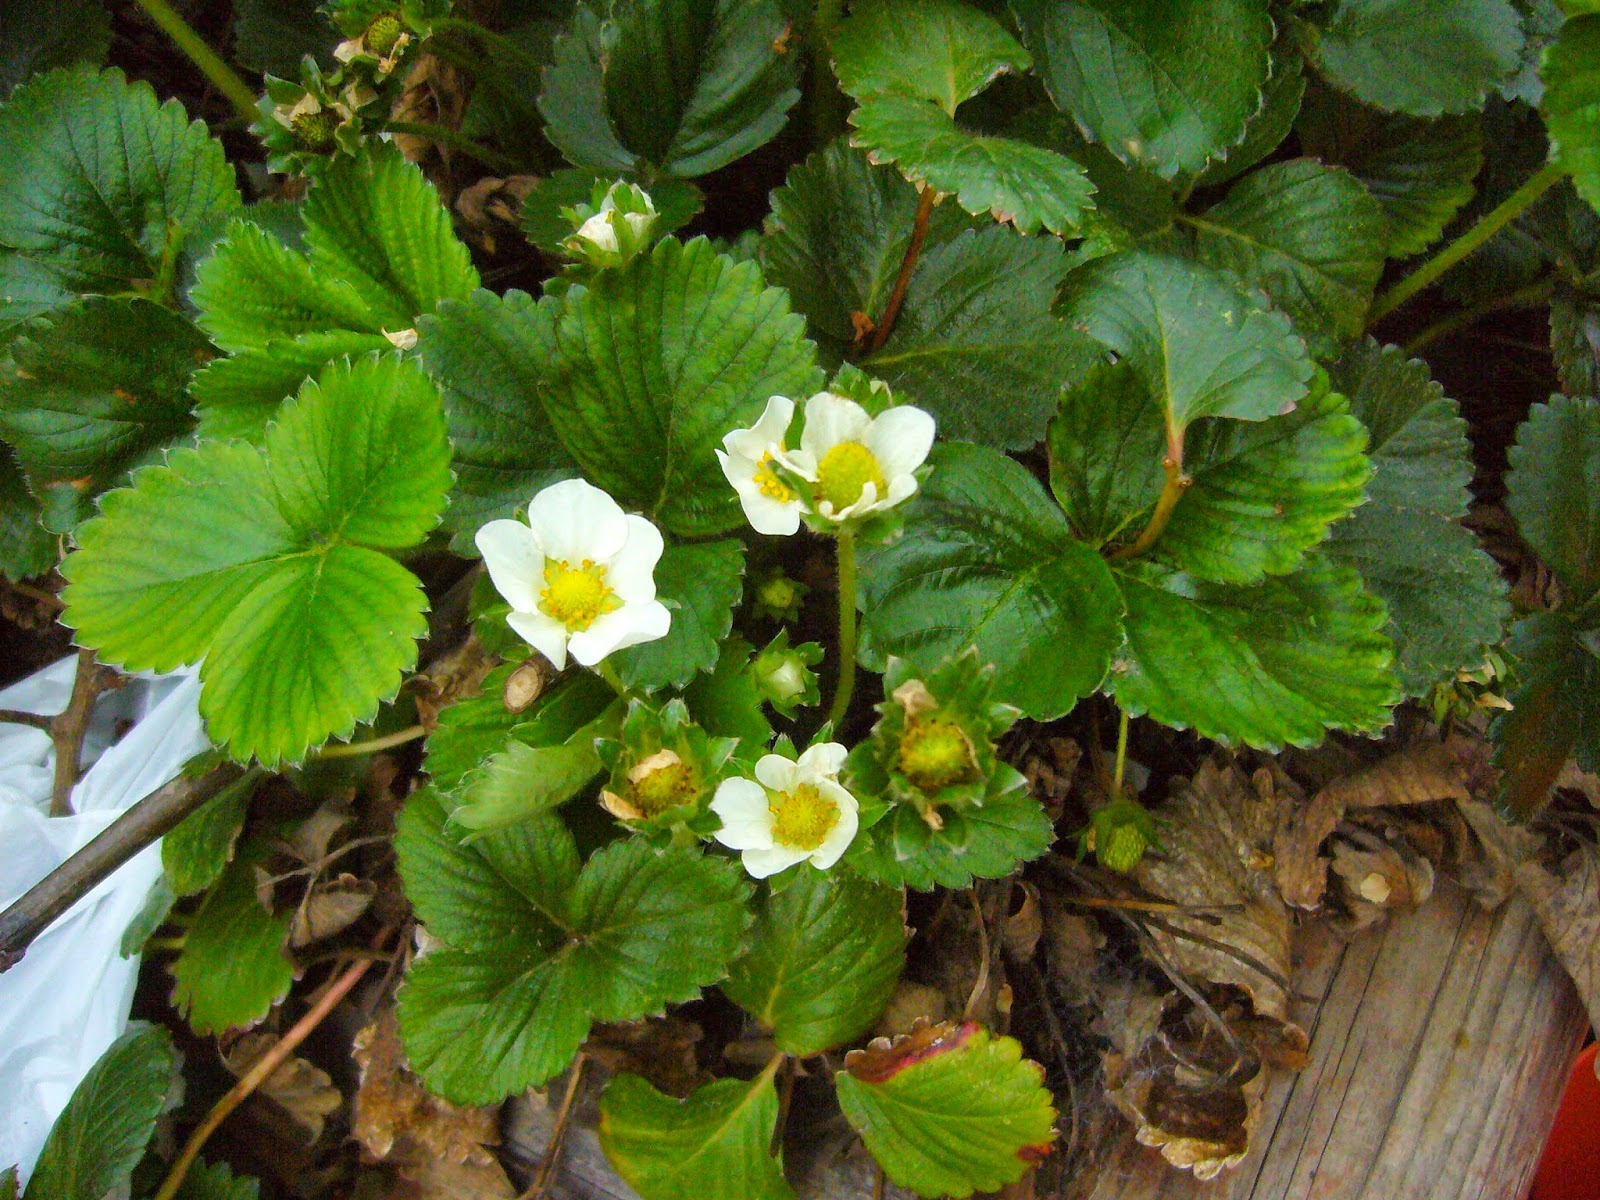 Sacramento vegetable gardening strawberries for the soul - Plant strawberries spring ...